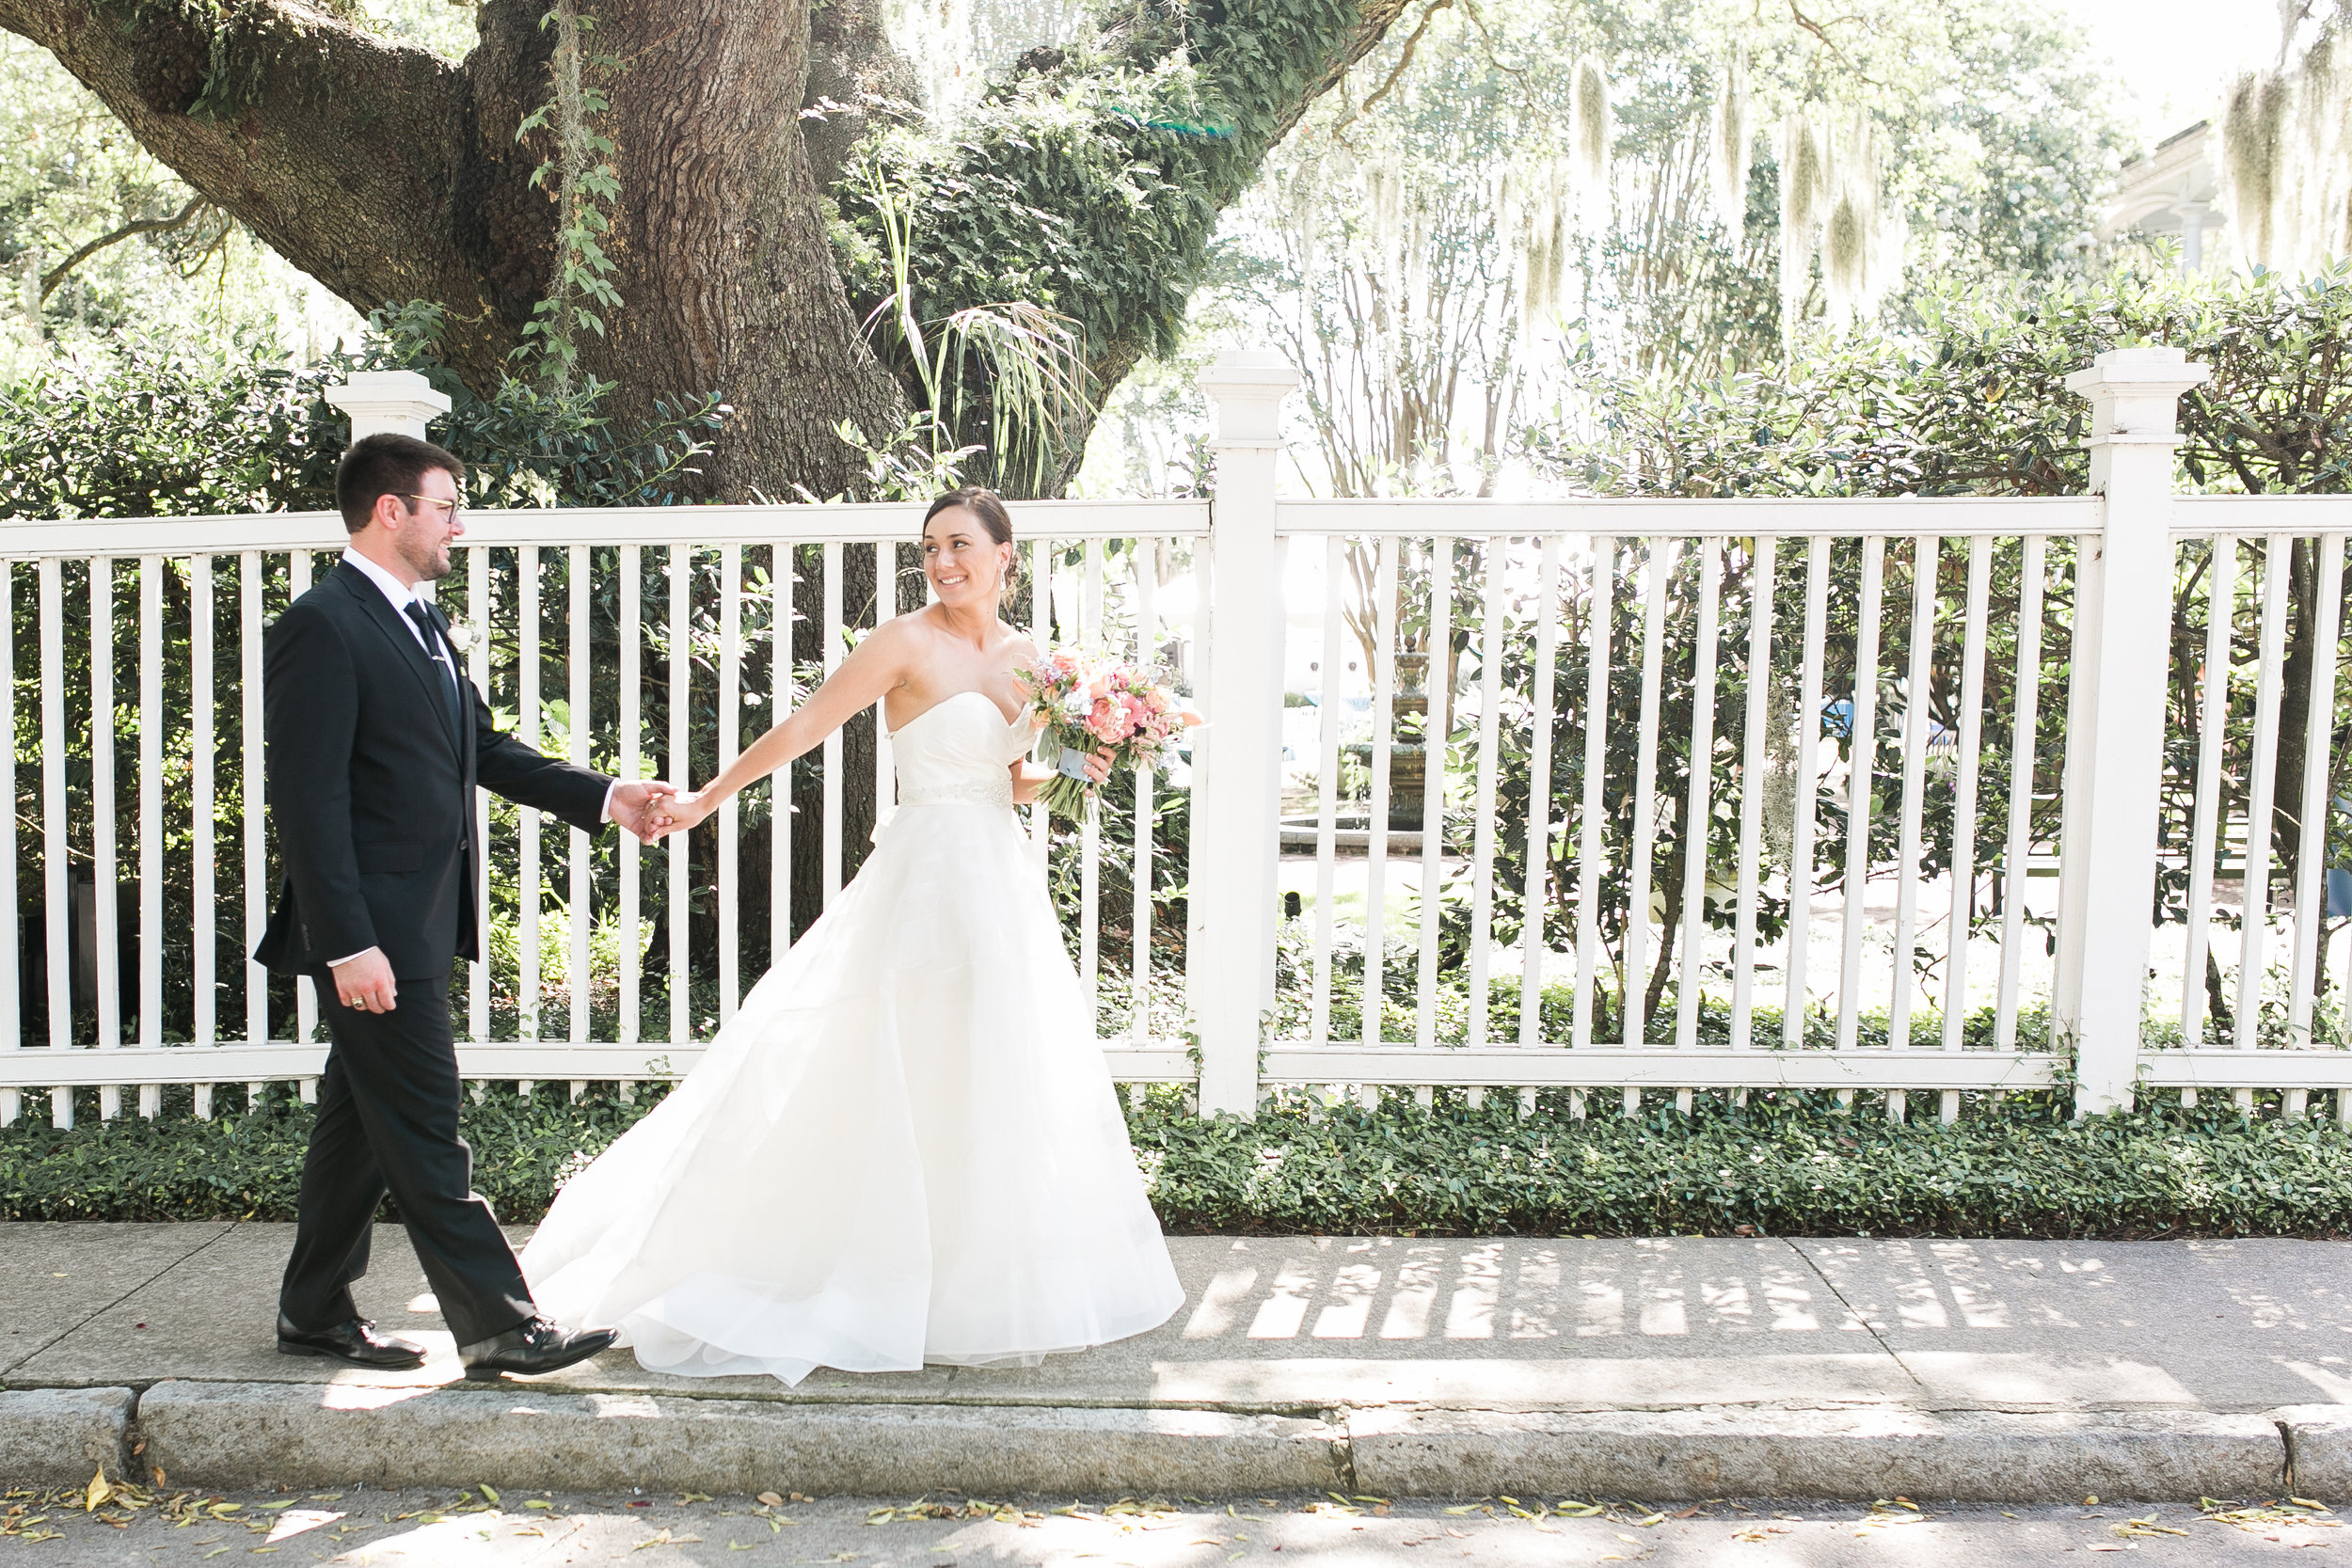 Charleston wedding portraits at The Governor Thomas Bennett House photographed by Jenna Marie Weddings